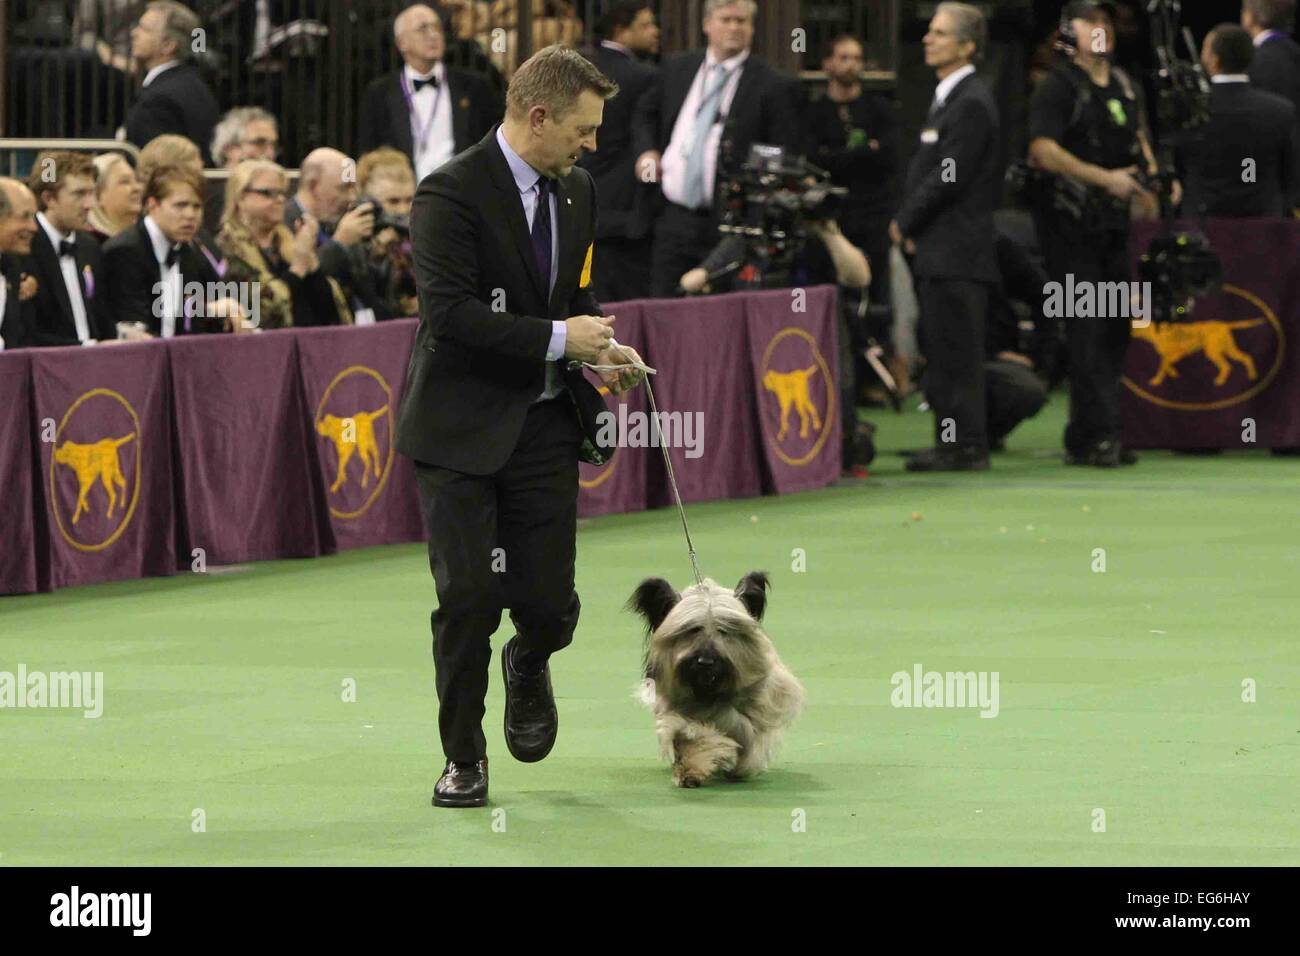 New York, NY, USA. 17th Feb, 2015. Charlie, a skye terrier, performs at the 139th Annual Westminster Kennel Club Stock Photo